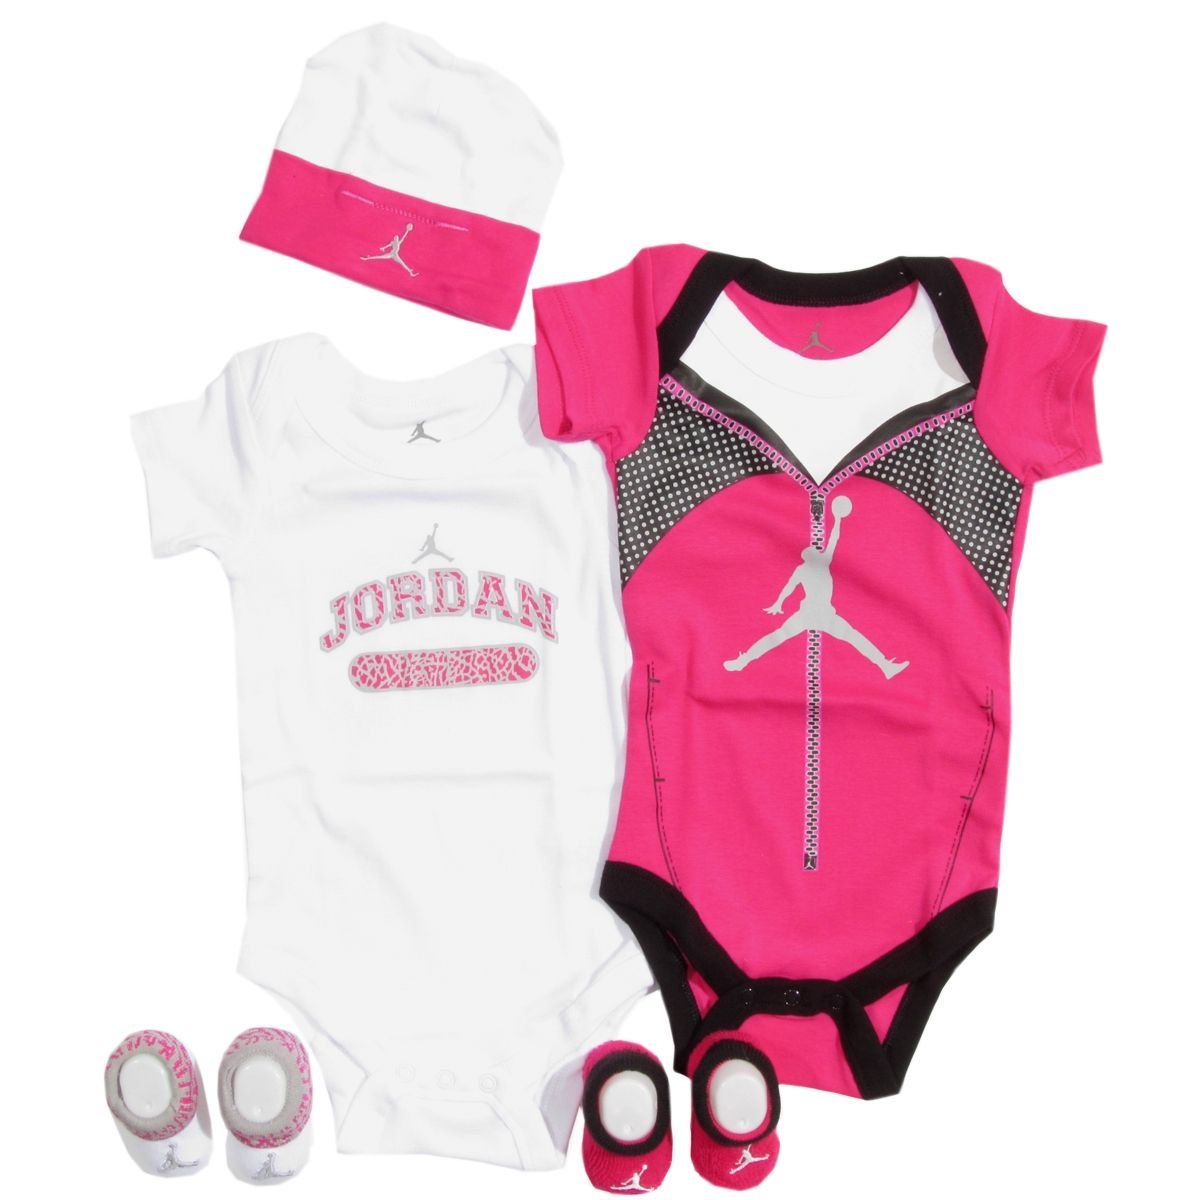 Baby Girl Jordan Clothes Fair Jordan Baby Girl 5 Piece Set  Babies Babies Clothes And Girls Design Ideas